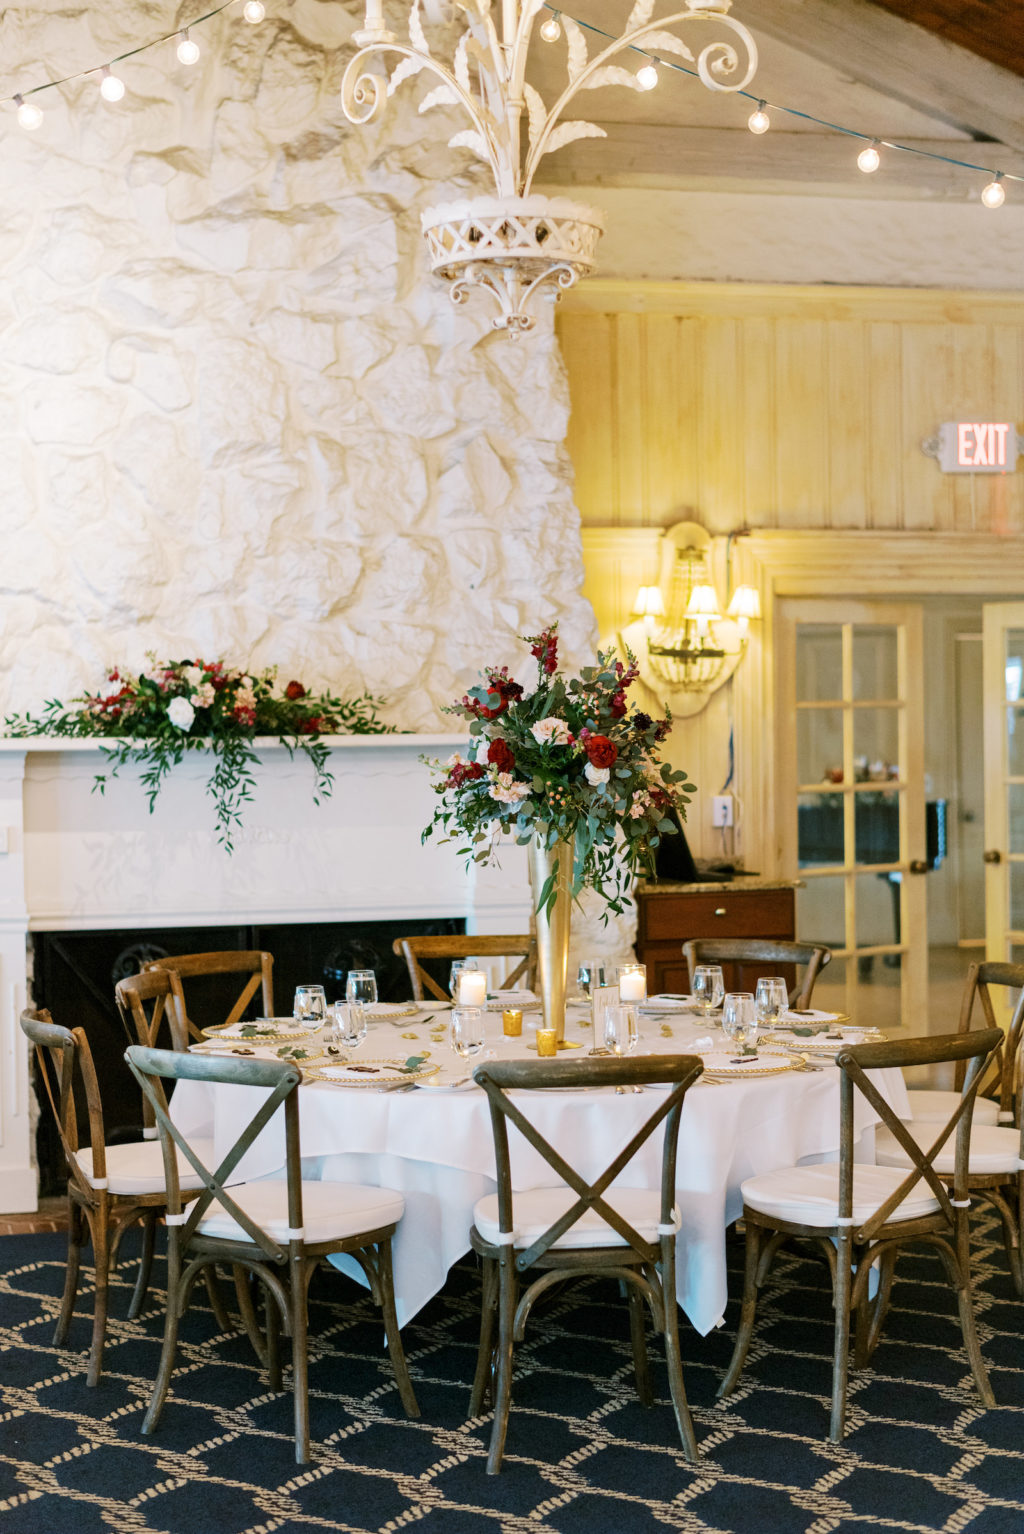 Rustic Romantic Wedding Reception Decor, Wooden Cross Back Chairs, Tall Gold Vase with Lush Red and White Roses and Greenery Floral Centerpiece   Tampa Bay Wedding Venue Carlouel Beach and Yacht Club   Wedding Rentals A Chair Affair